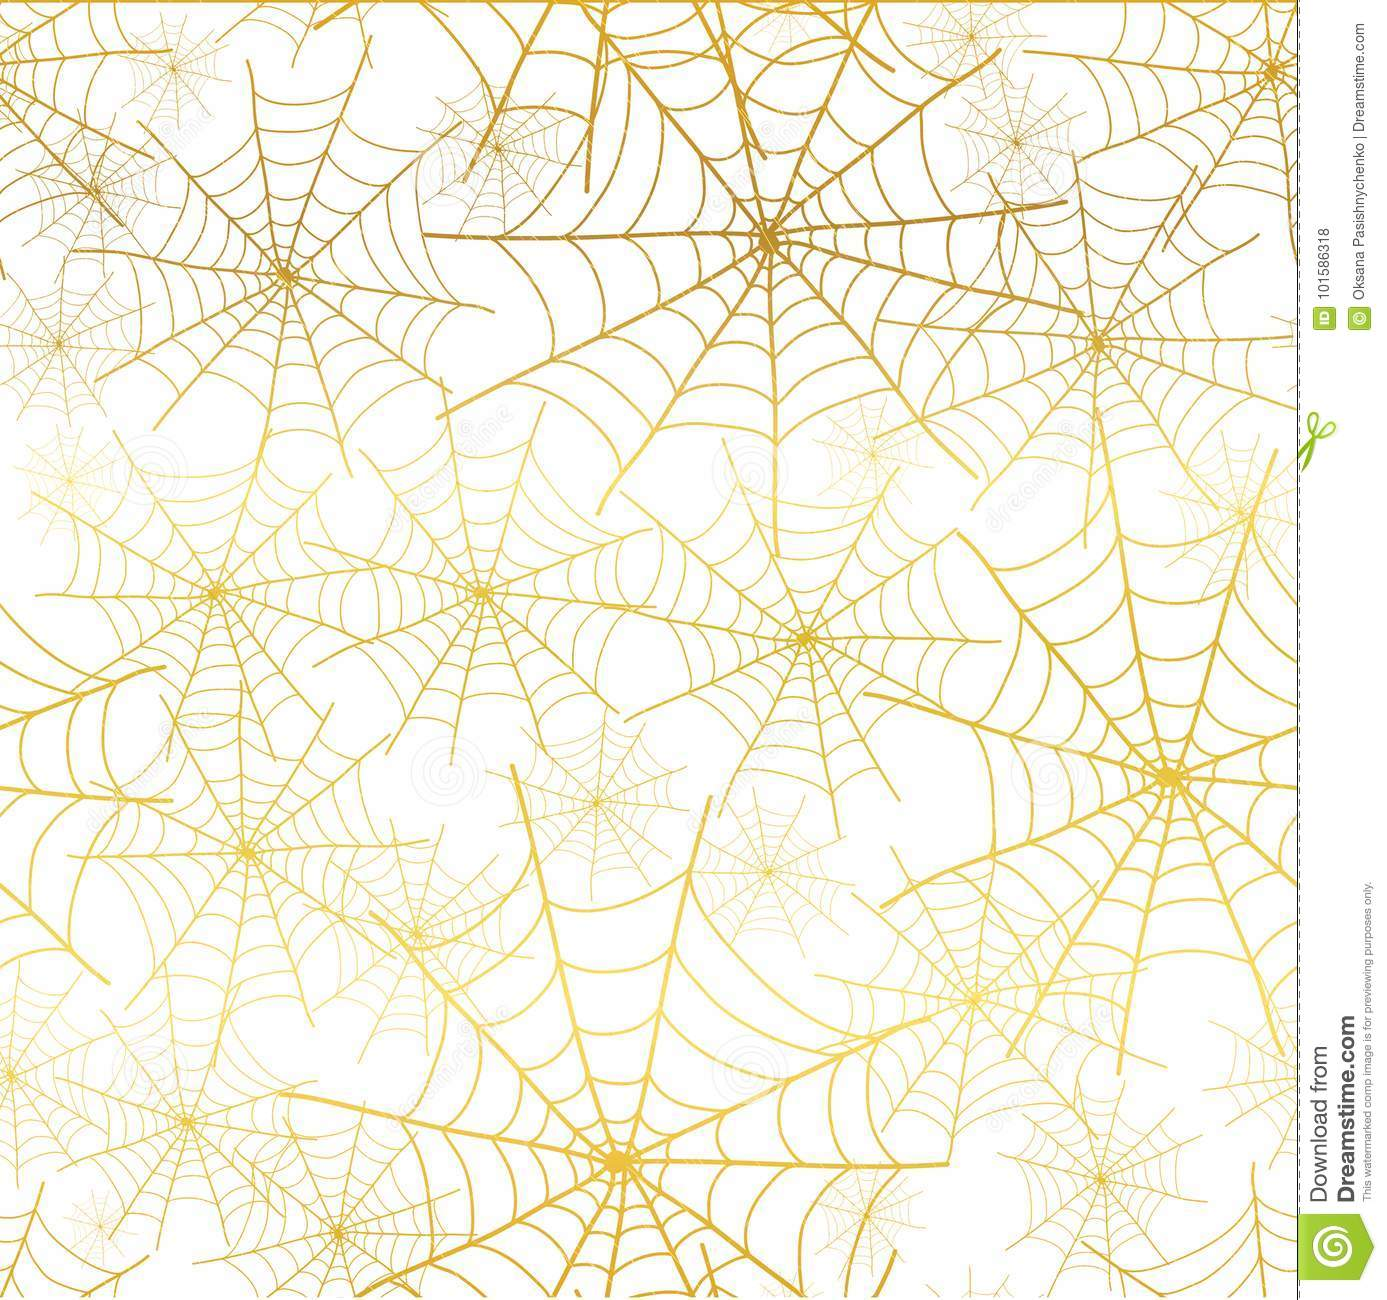 Top Wallpaper Halloween Gold - vector-gold-white-spiderweb-halloween-seamless-repeat-pattern-background-great-spooky-fabric-wallpaper-giftwrap-packaging-101586318  Snapshot_956387.jpg